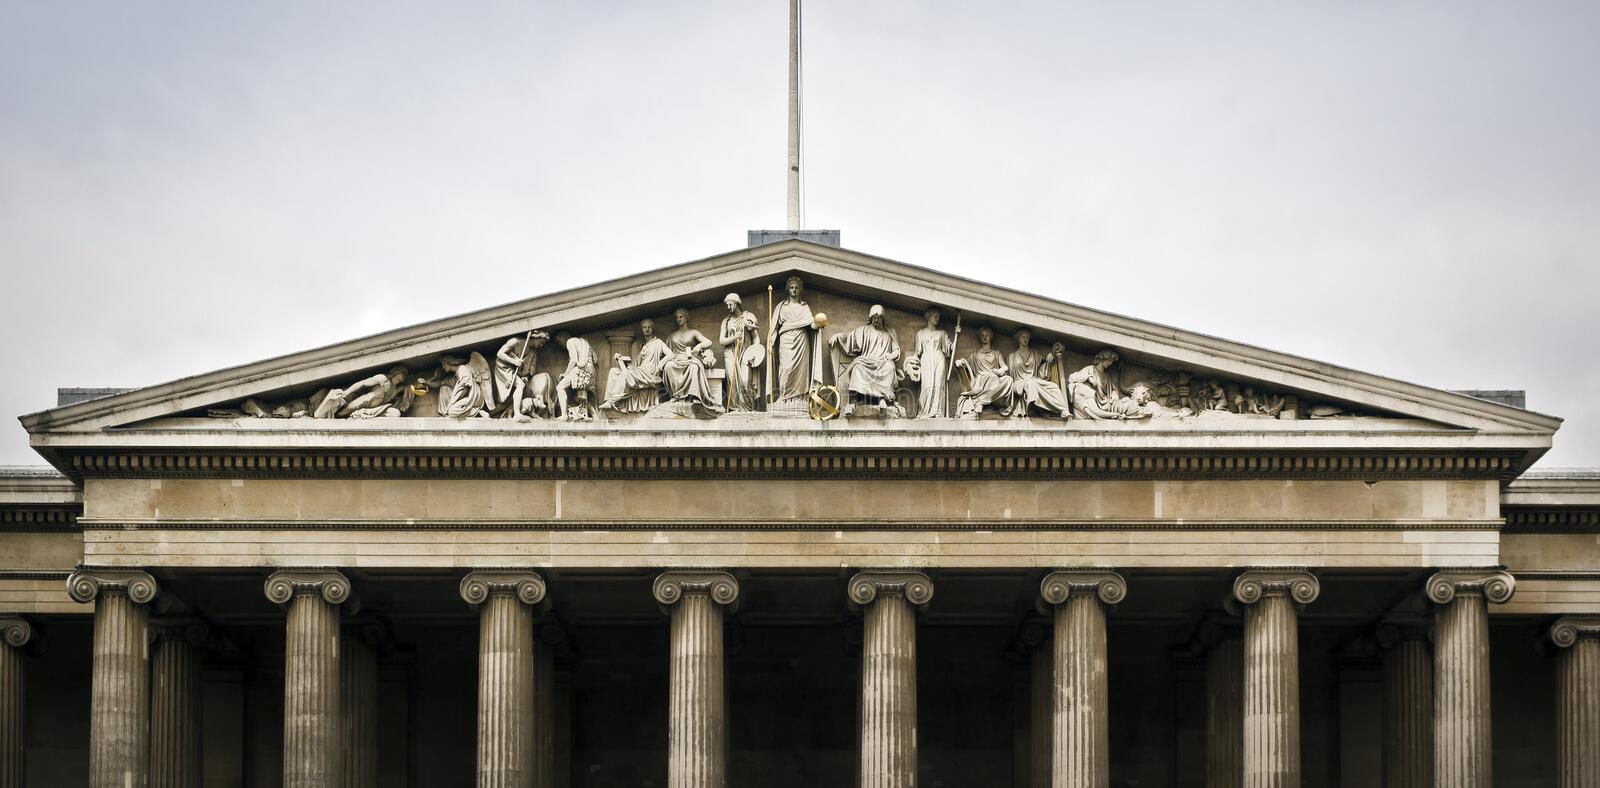 British Museum in London. The Main Entrance of the British Museum in London royalty free stock image